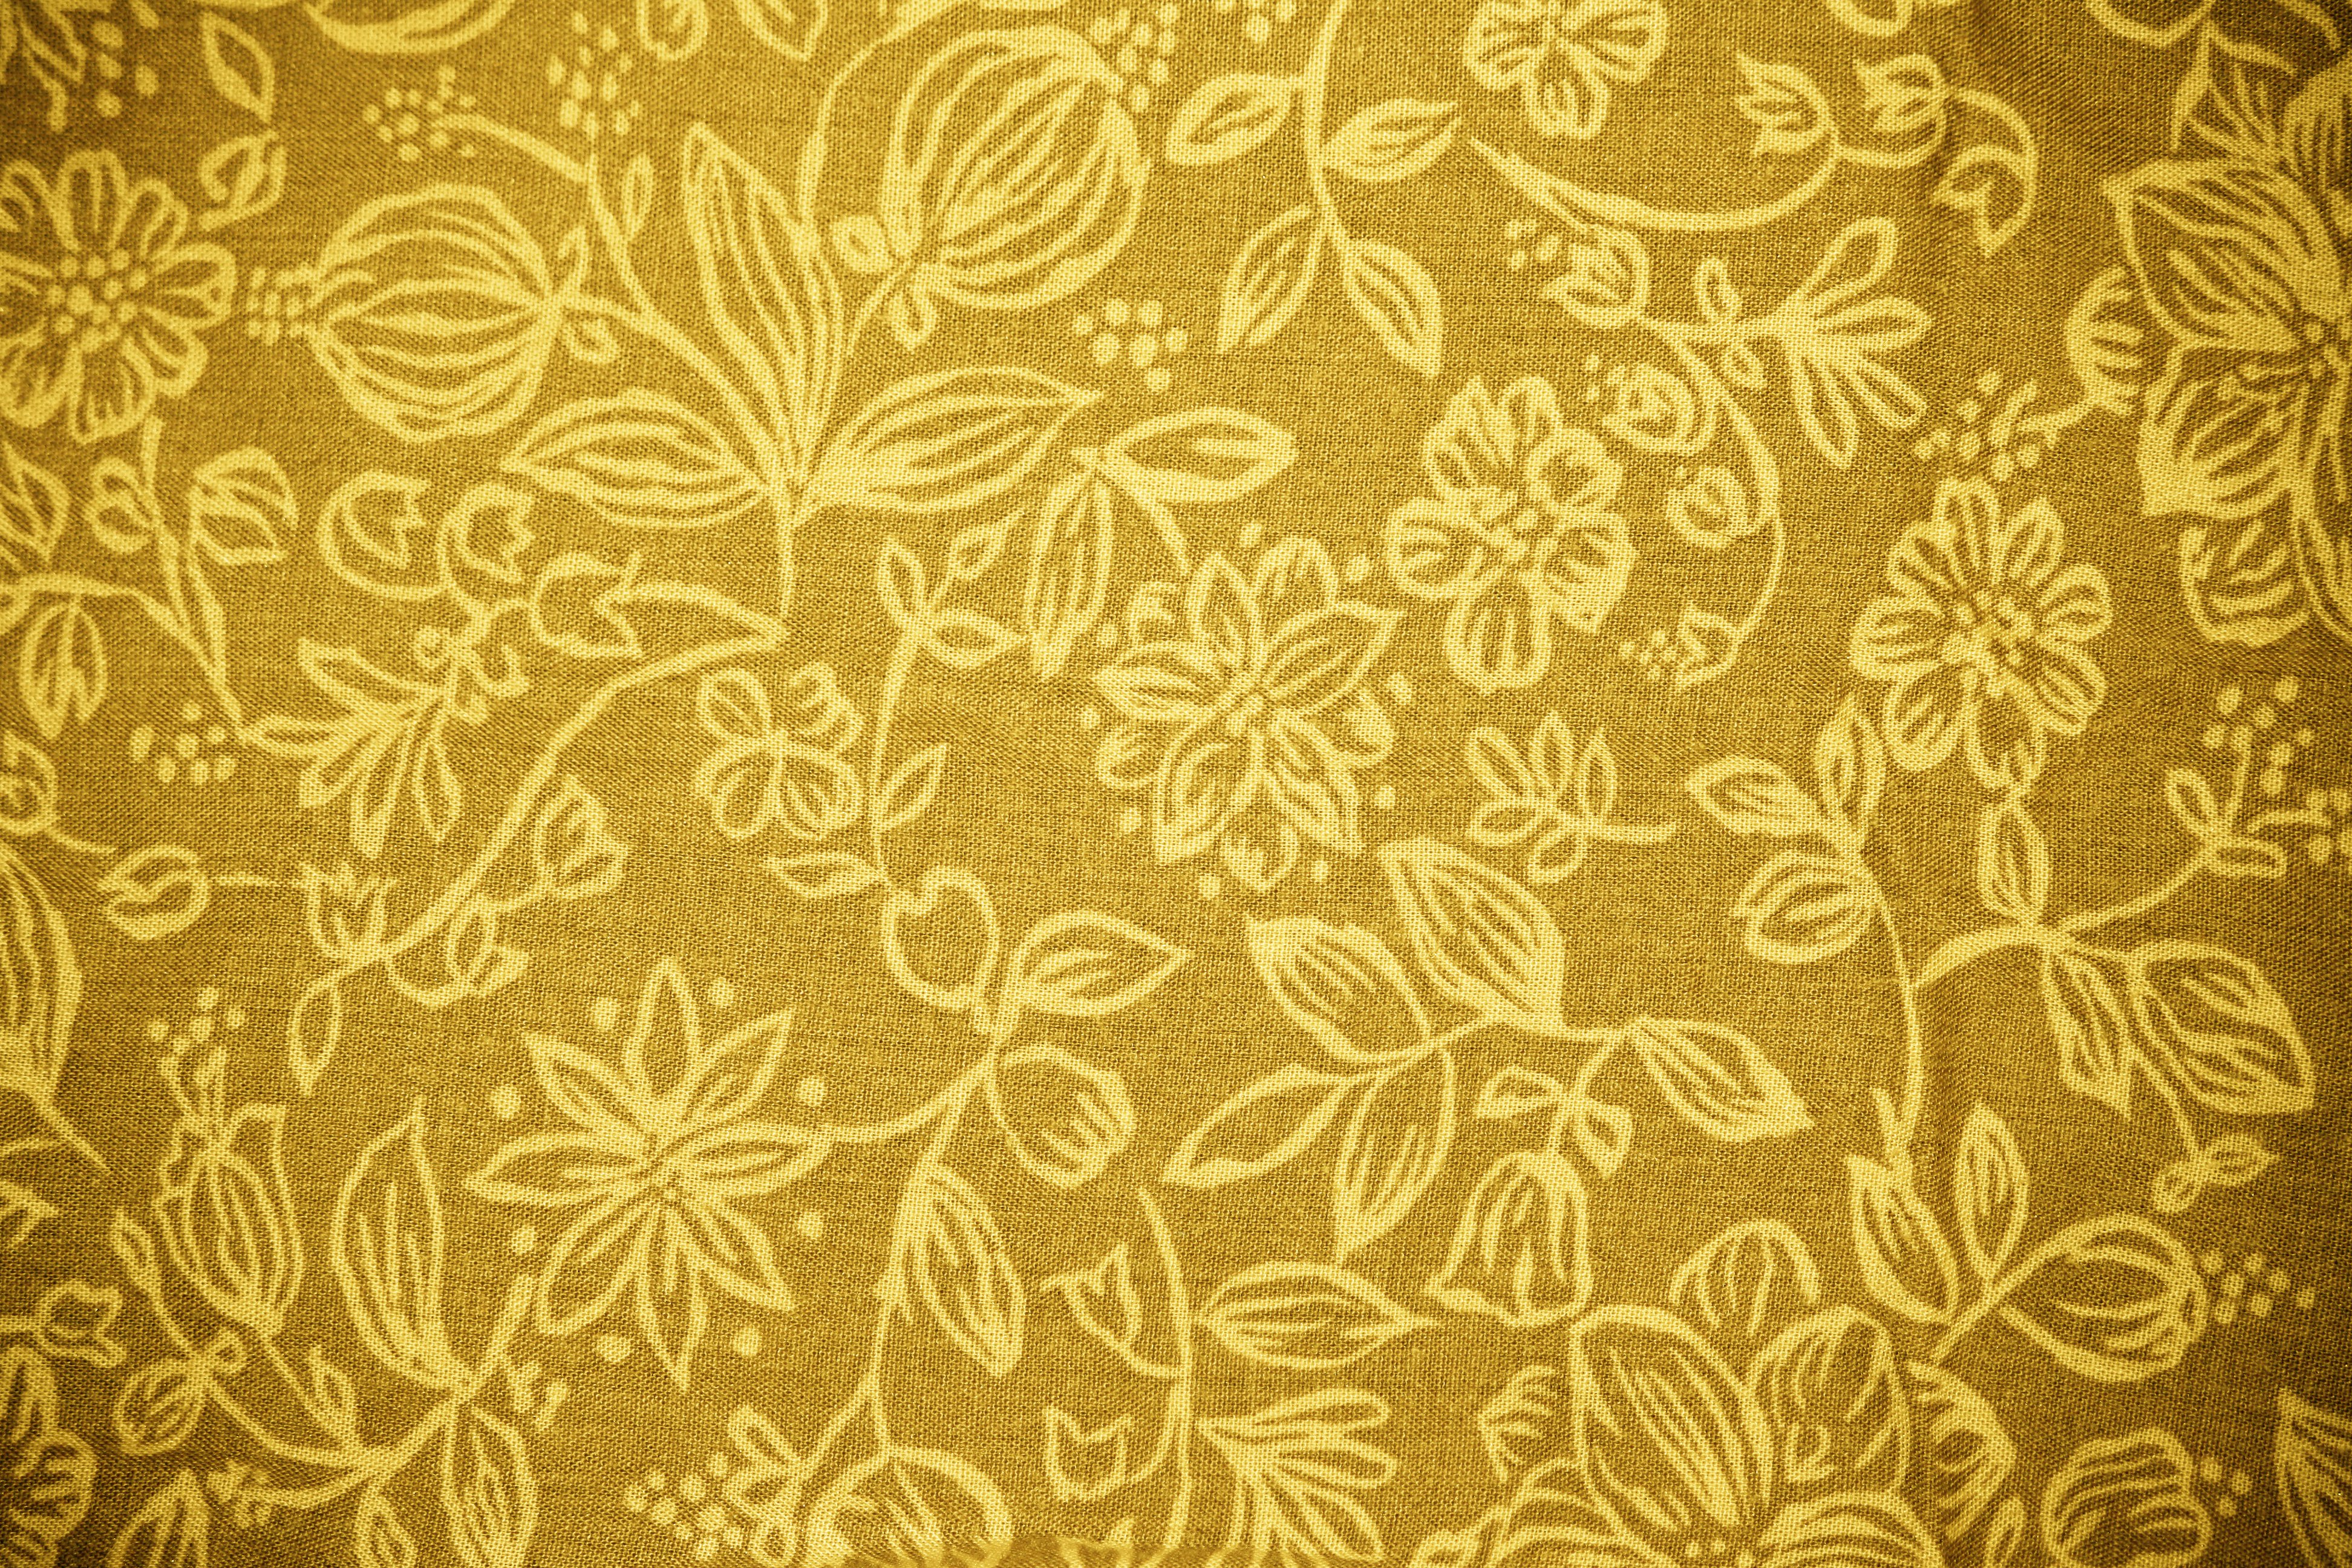 Gold Fabric With Floral Pattern Texture